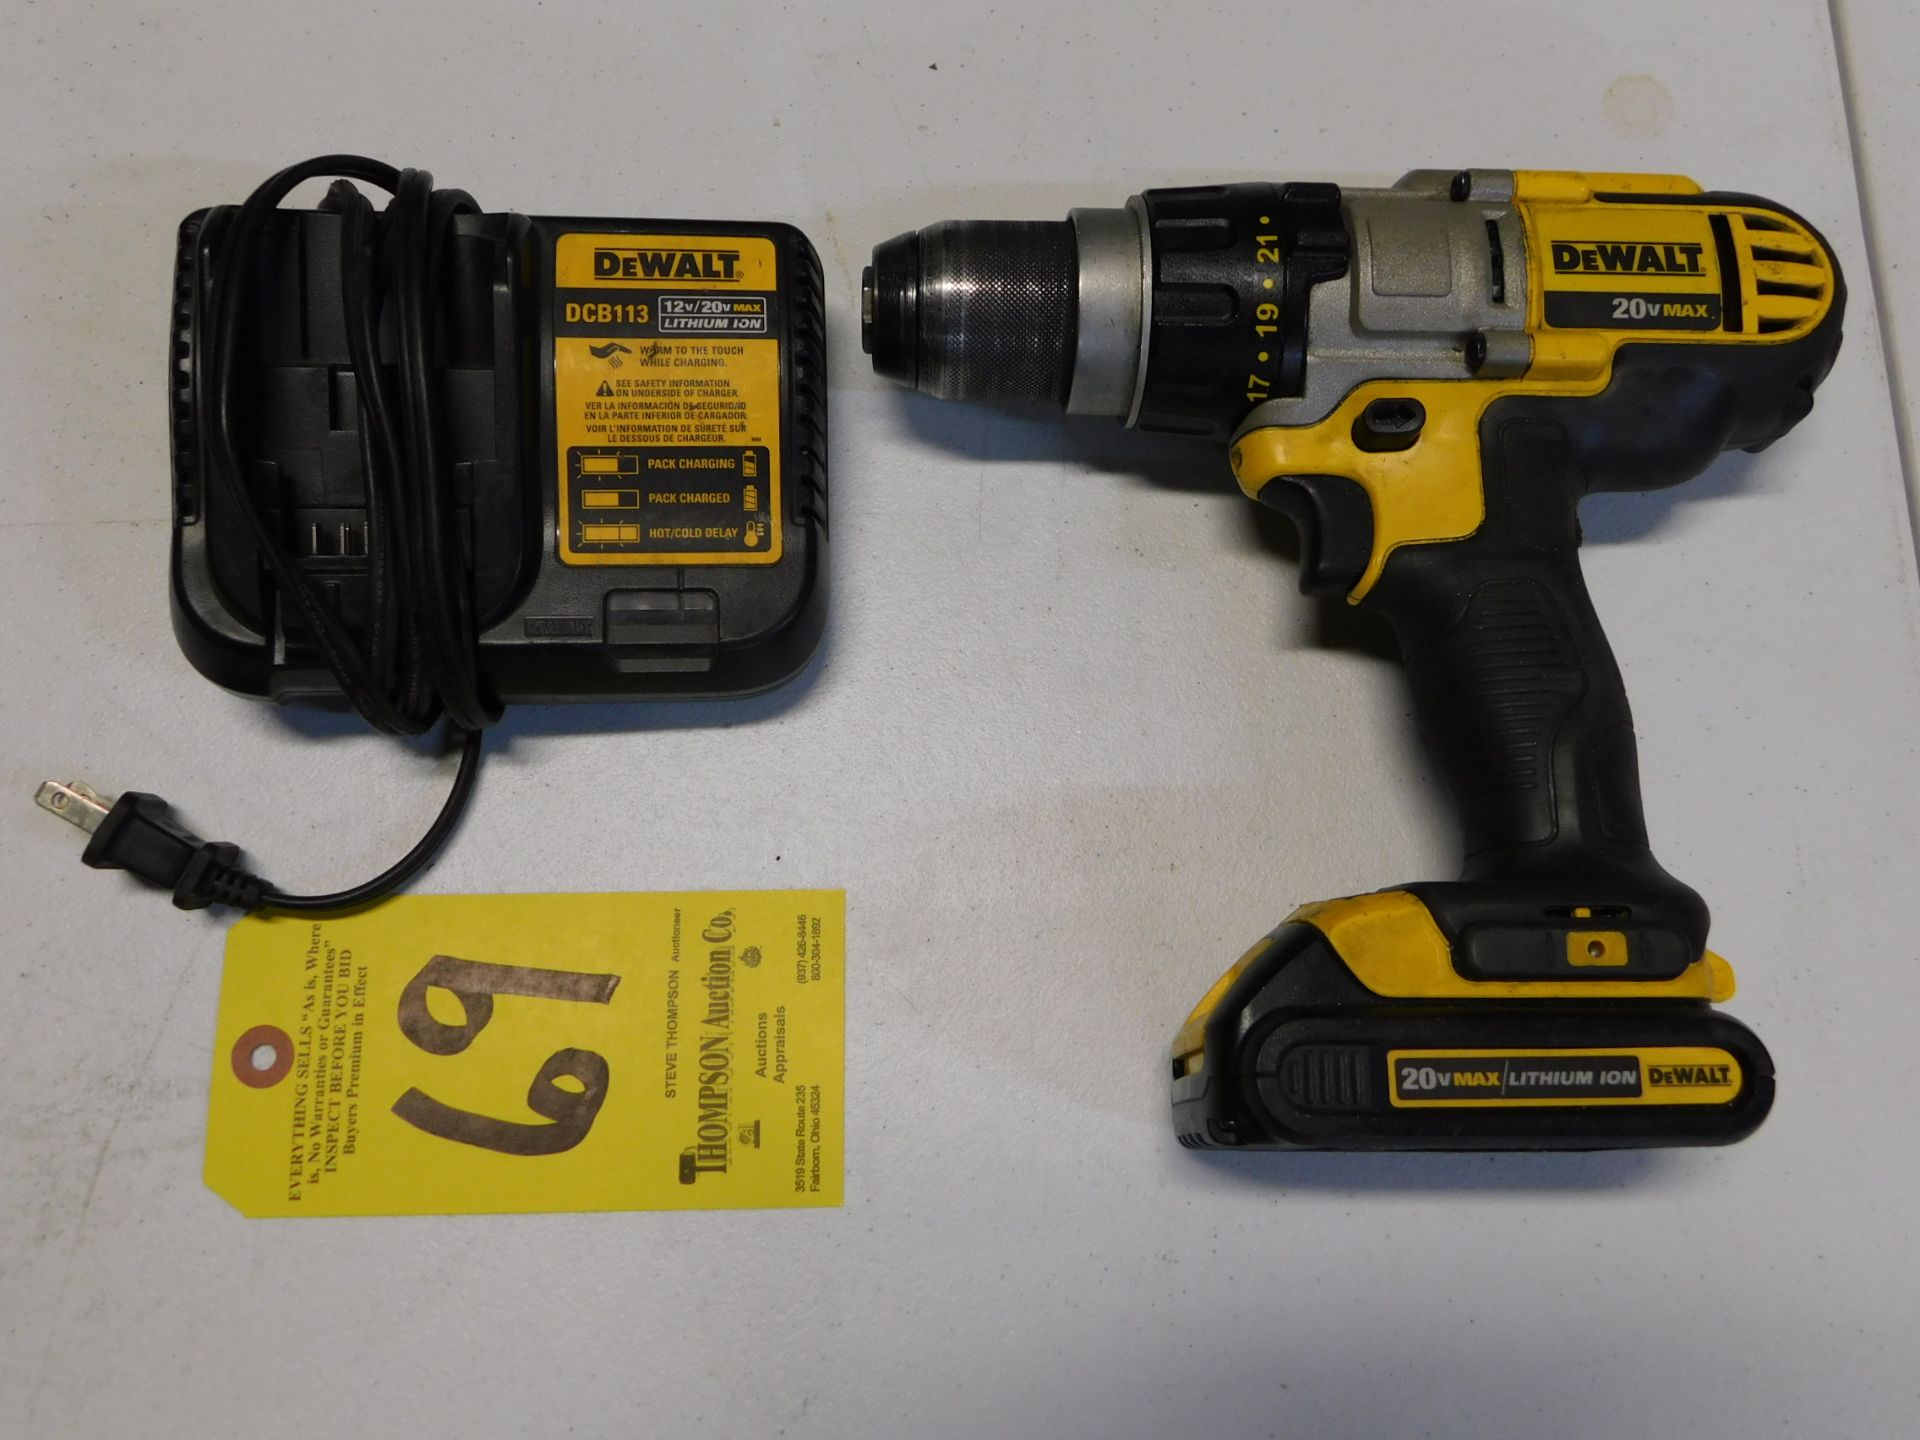 """Lot 69 - Dewalt DCD980 1/2"""" Cordless 20V Drill with Battery and Charger, Lot Location 3204 Olympia Dr. A,"""